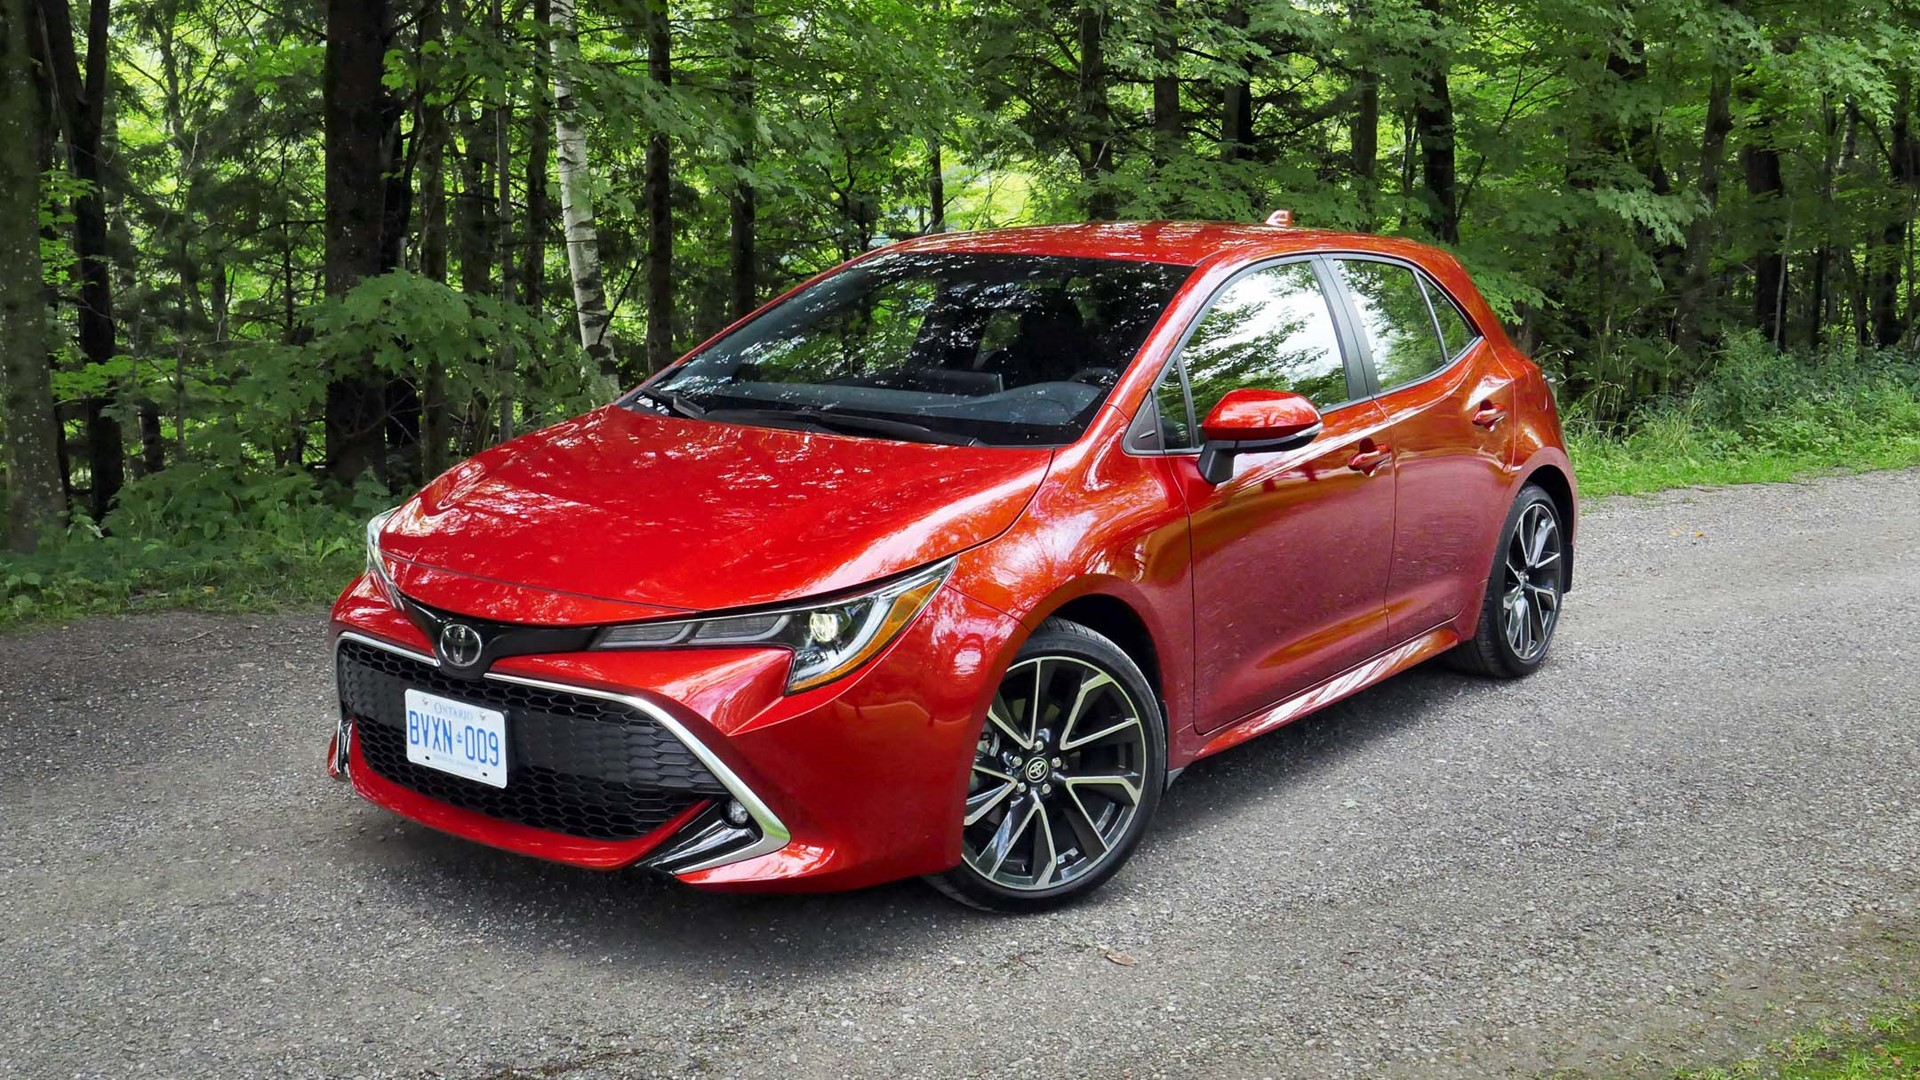 72 All New 2019 Toyota Corolla Hatchback Review